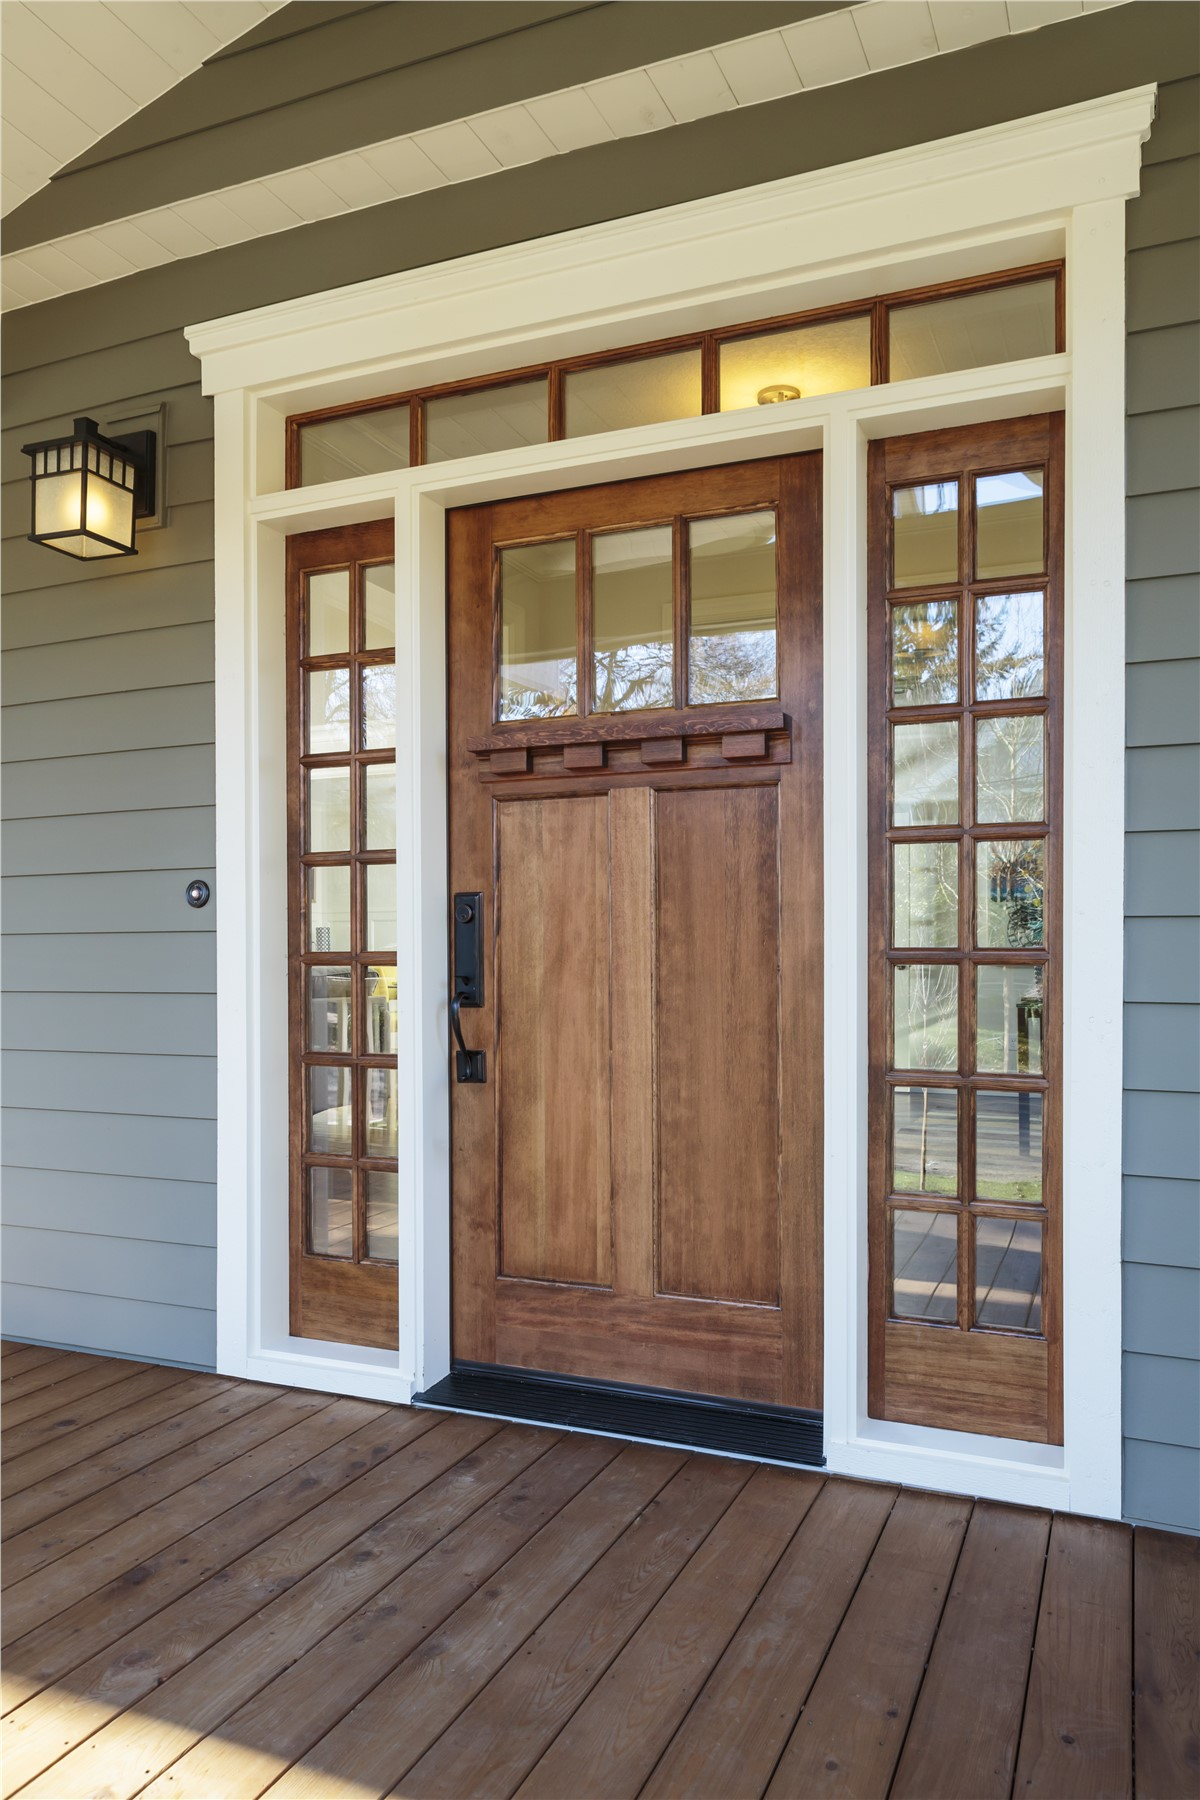 Pensacola security doors security door replacement in pensacola pensacola security doors security door replacement in pensacola hometown contractors inc planetlyrics